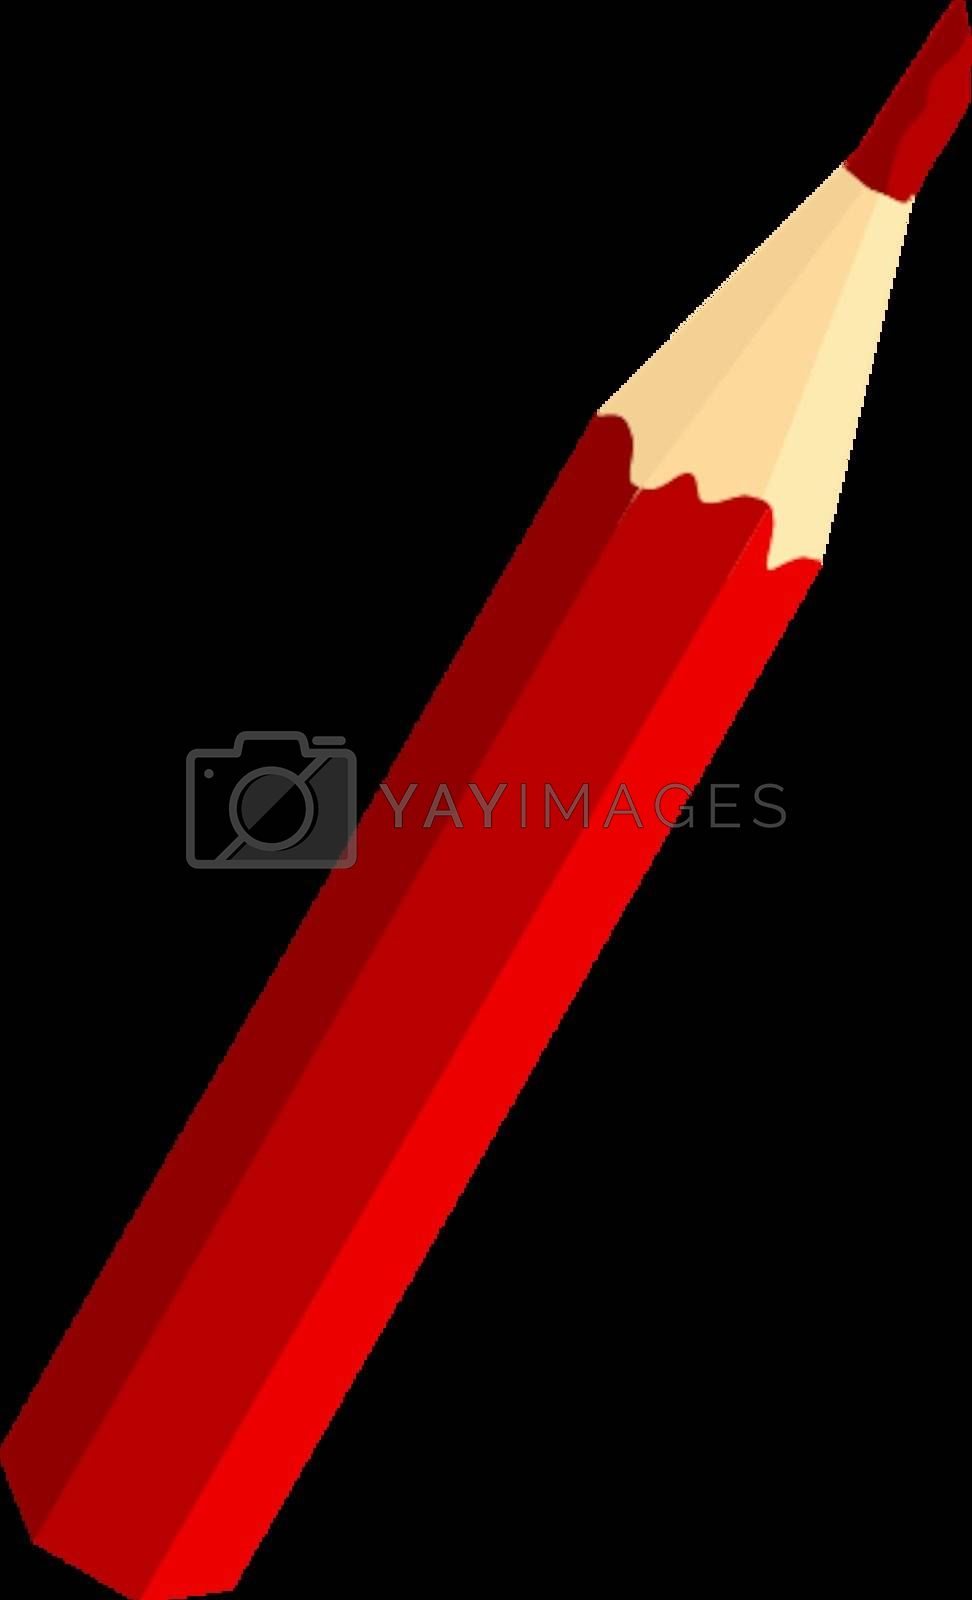 Royalty free image of red pencil by Perysty